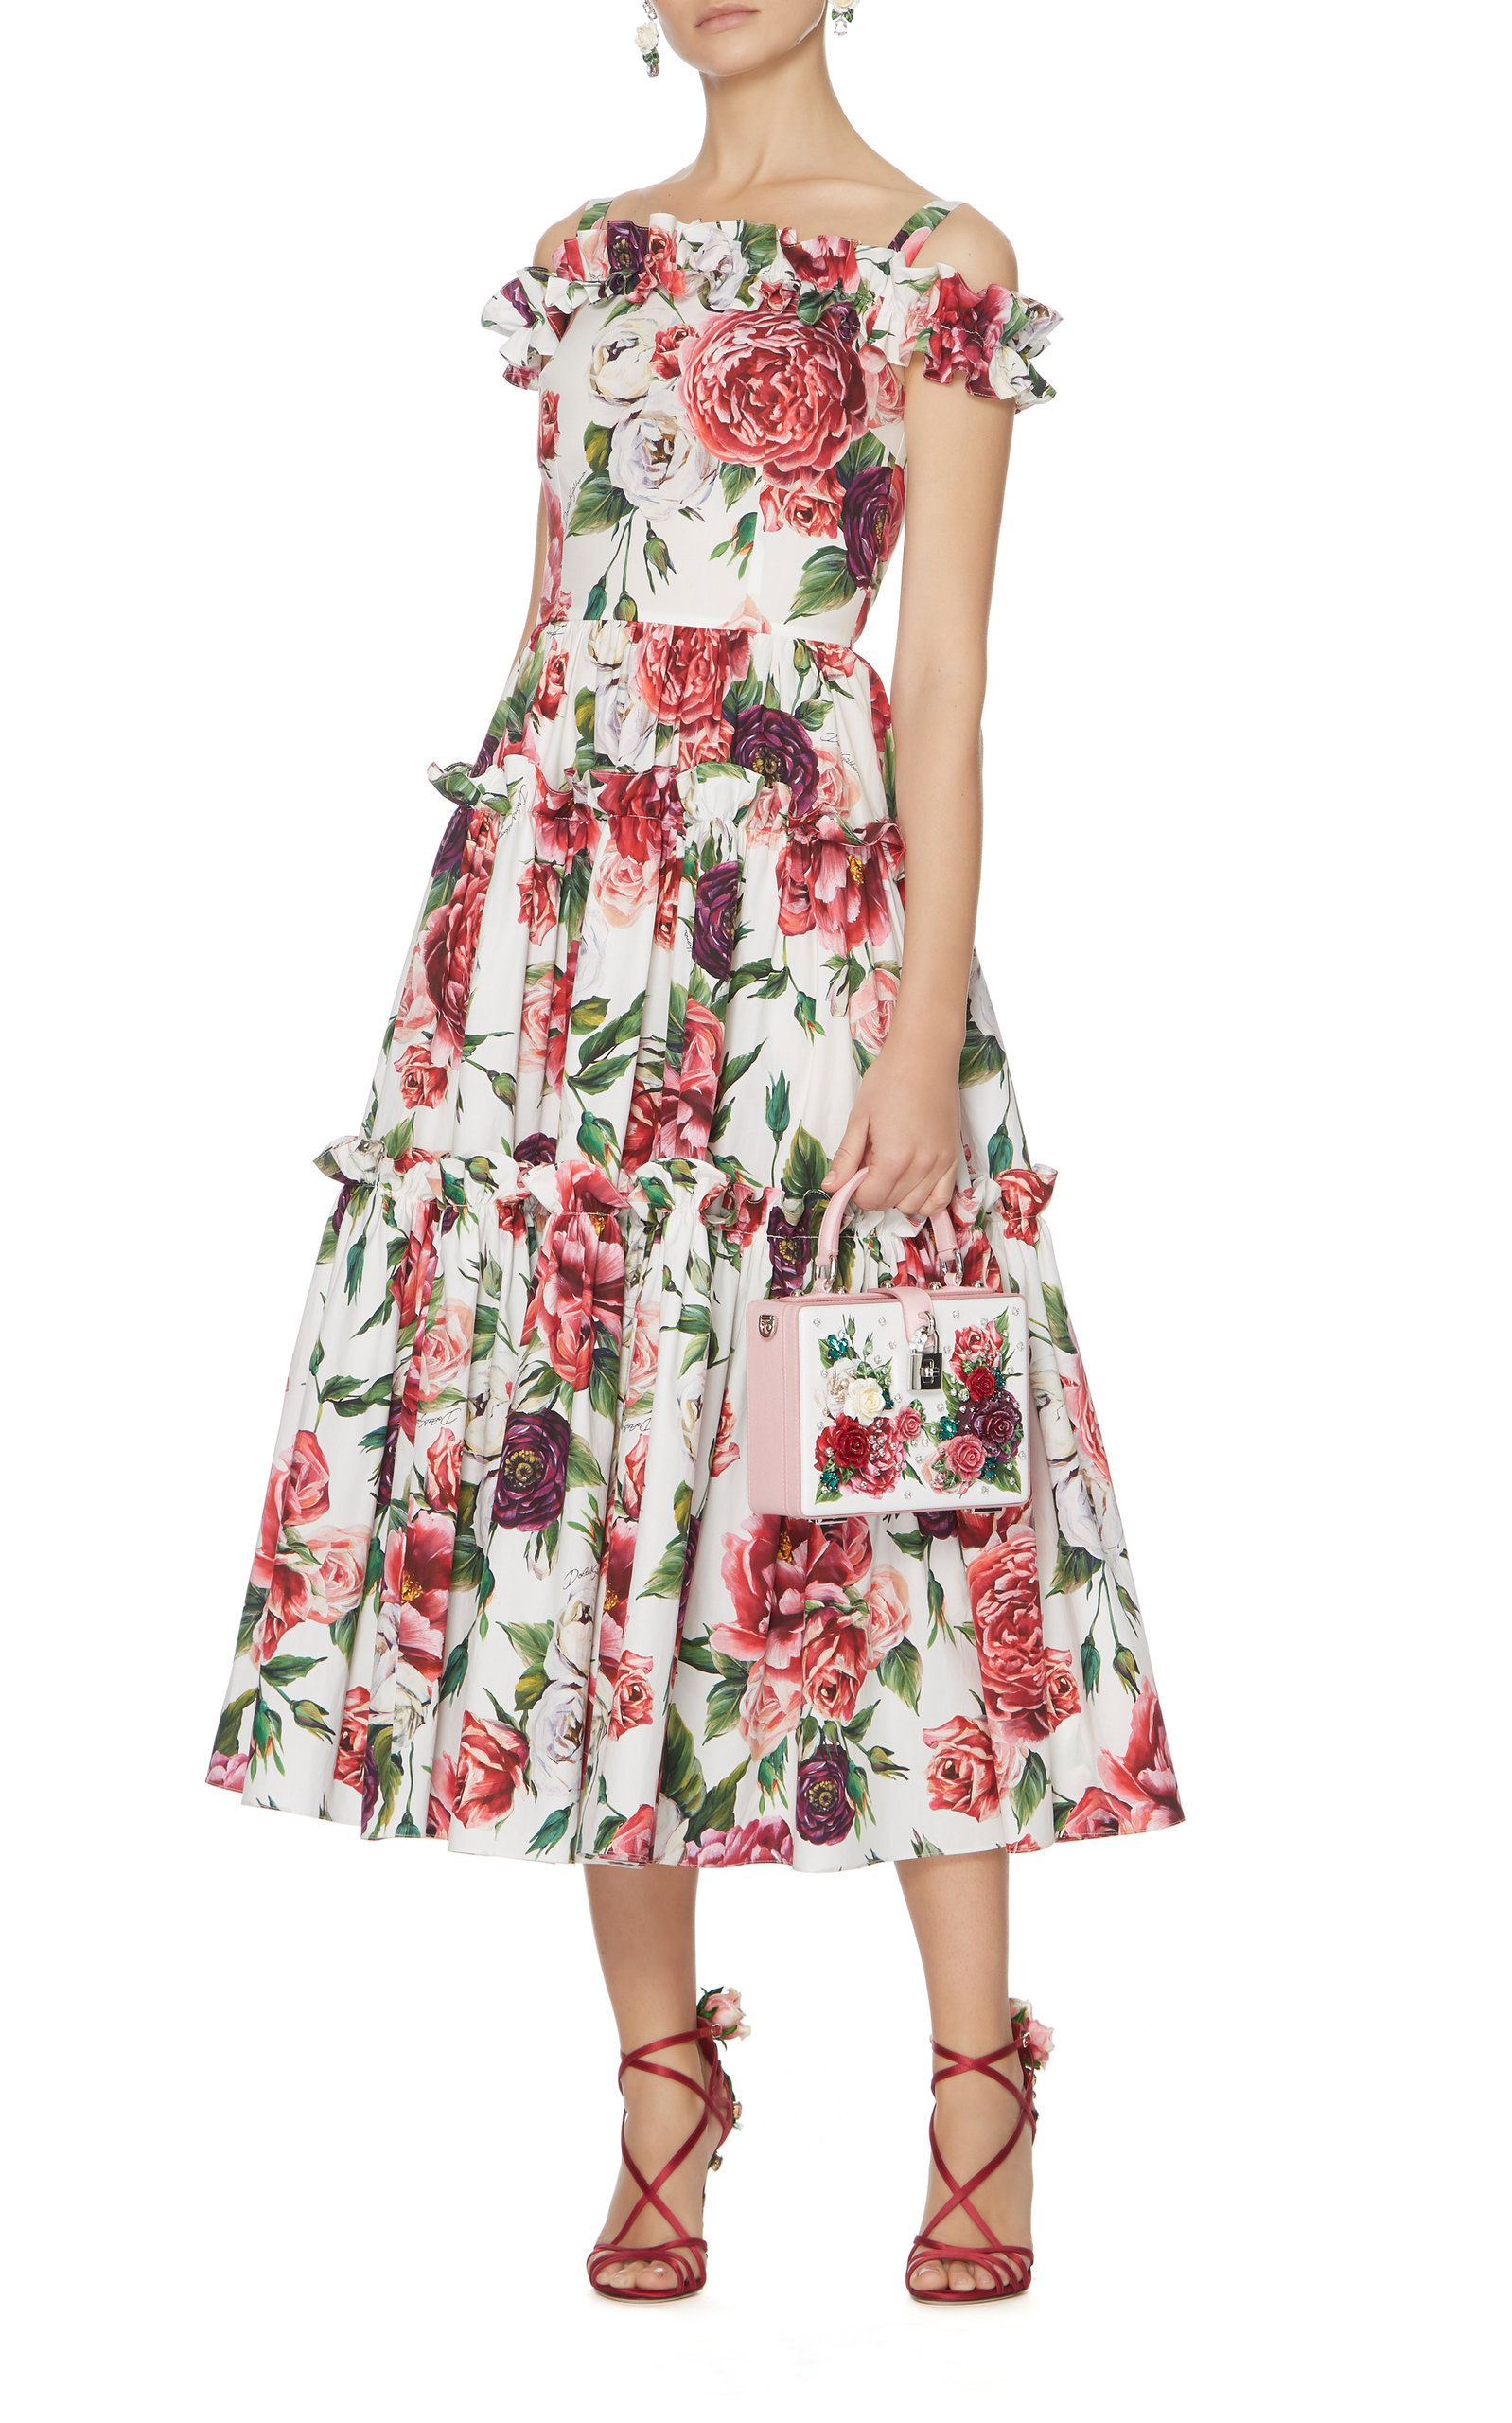 Womens Peony-Print Cotton Off-The-Shoulder Dress Dolce & Gabbana gebdc